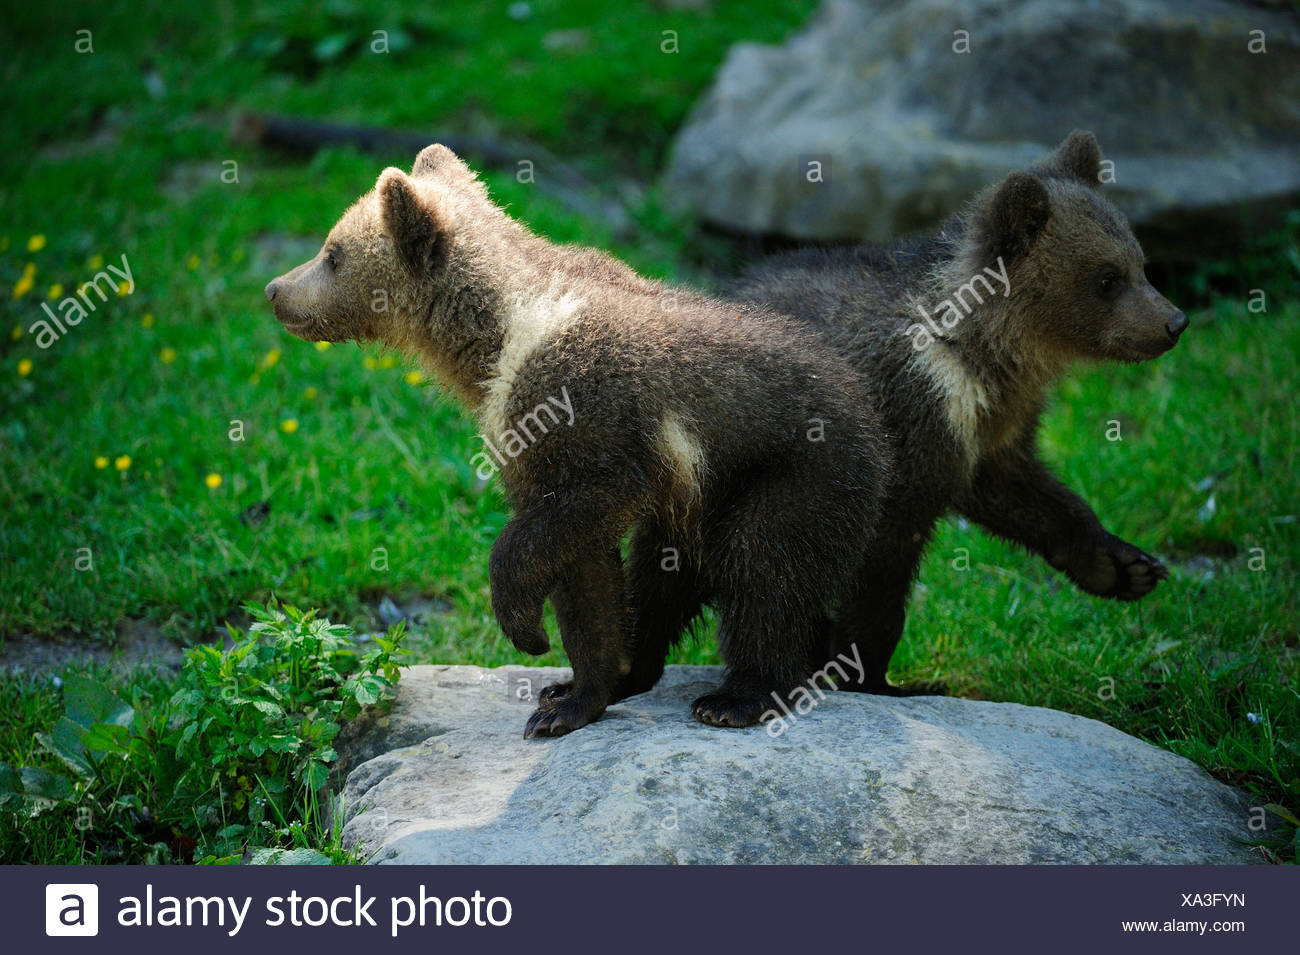 Two Brown Bears (Ursus arctos), cubs, 4 months, passing one another while taking a tour of discovery through their enclosure - Stock Image